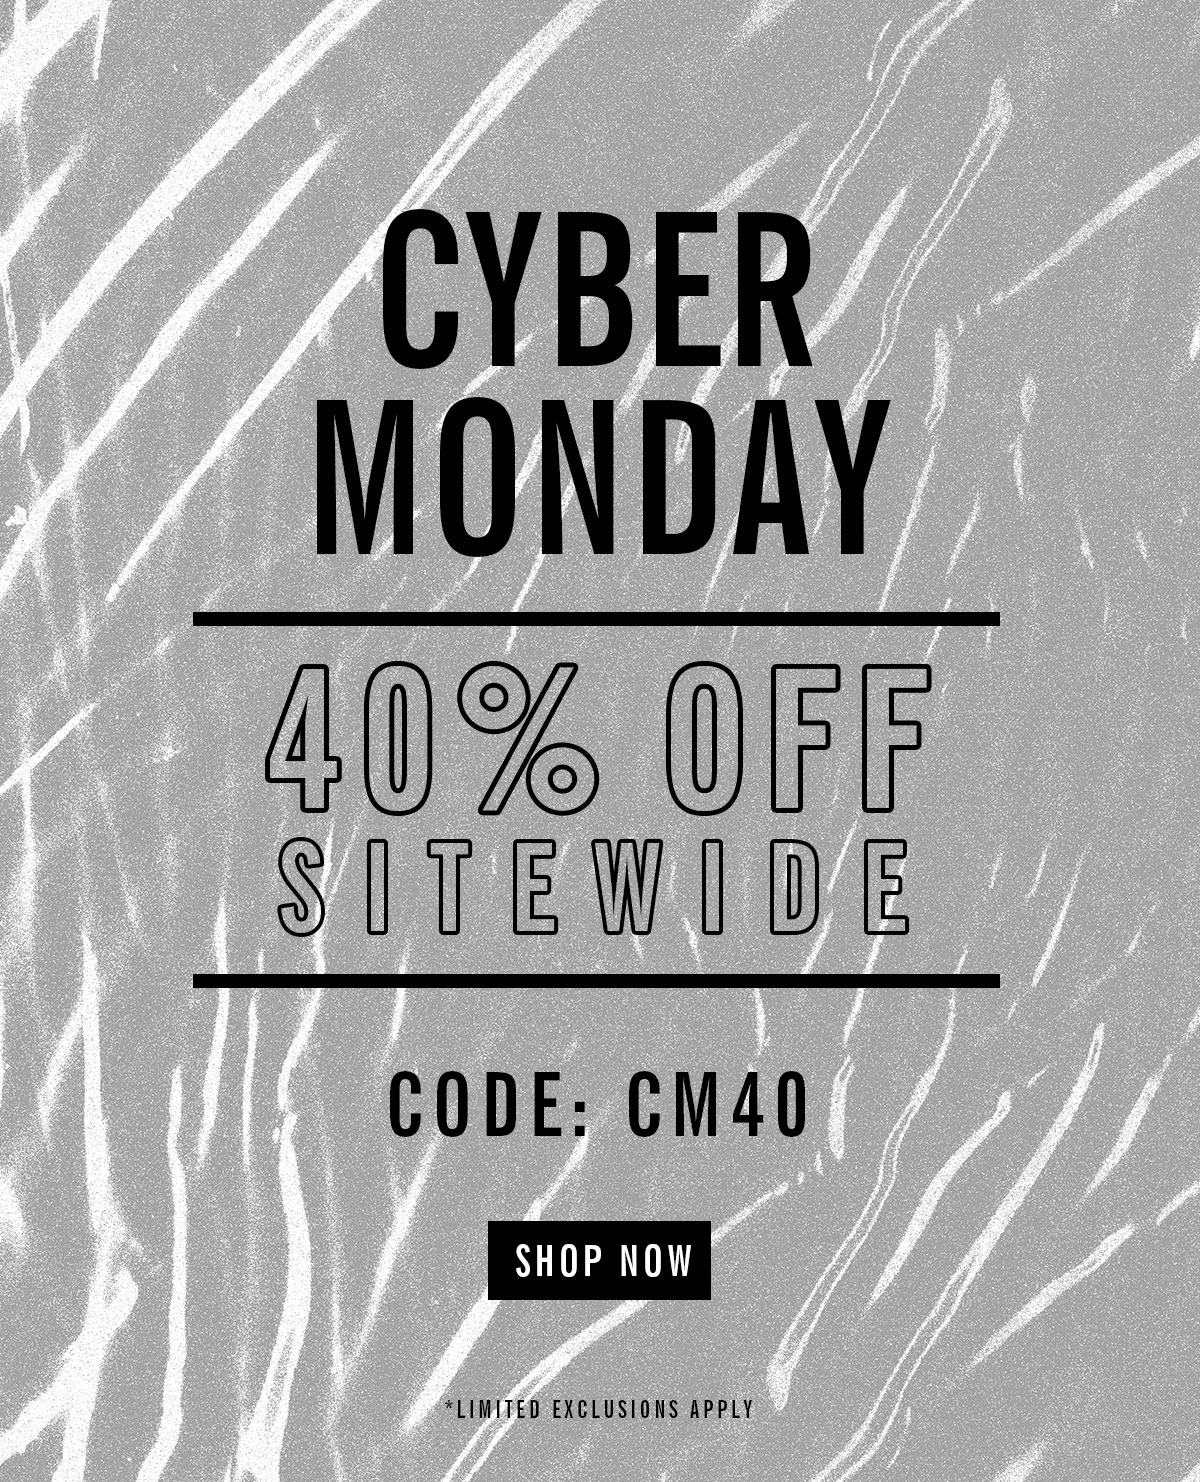 Cyber Monday | 40% Off Sitewide | Code: CM40 | Shop Now | Limited Exclusions Apply